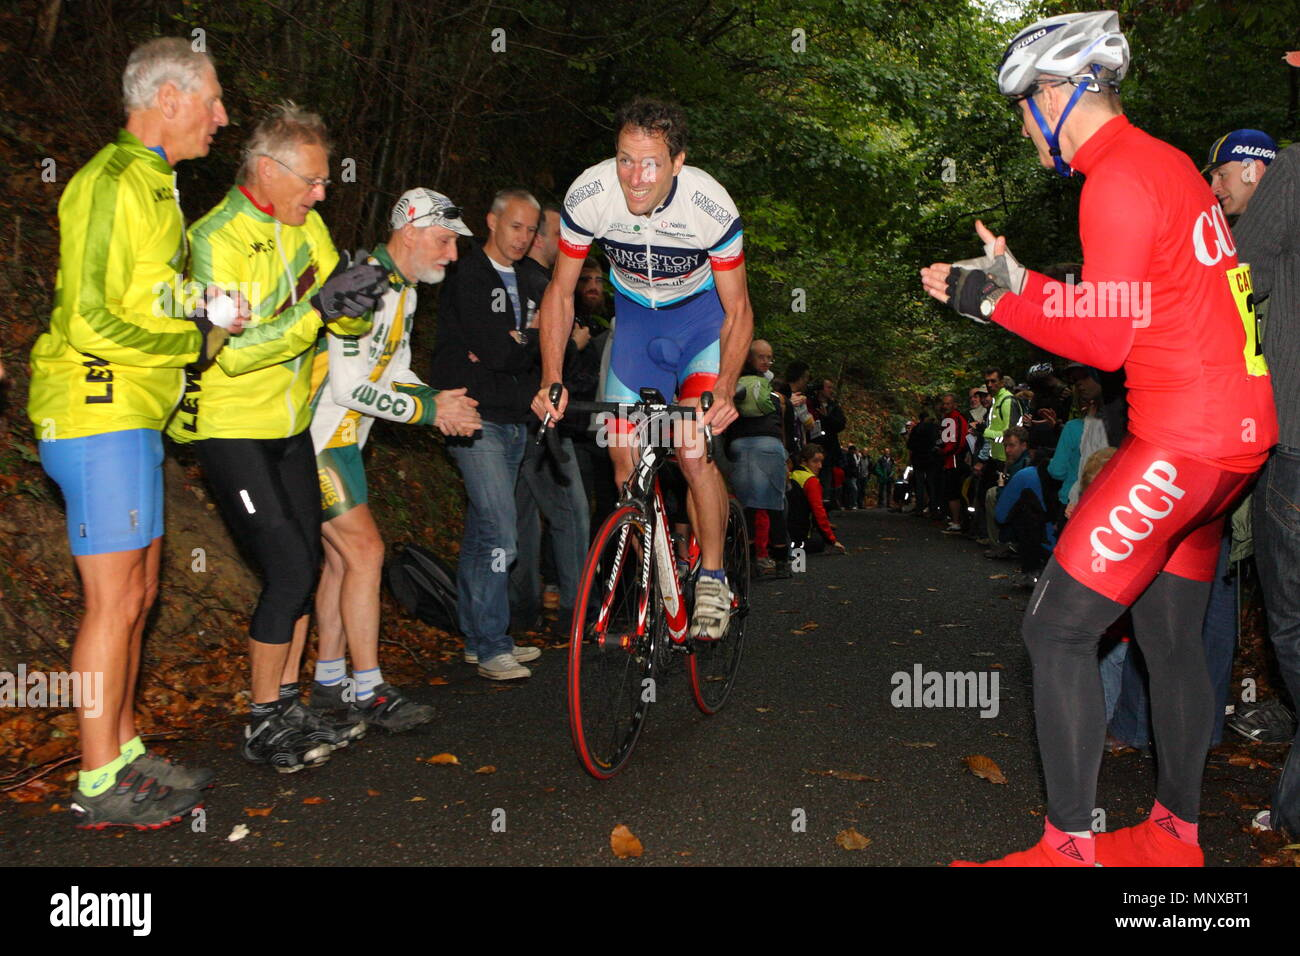 UK - Cycling - Cyclists compete in a time trial during the 116th Open Hill Climb. 10 October 2011 - Stock Image